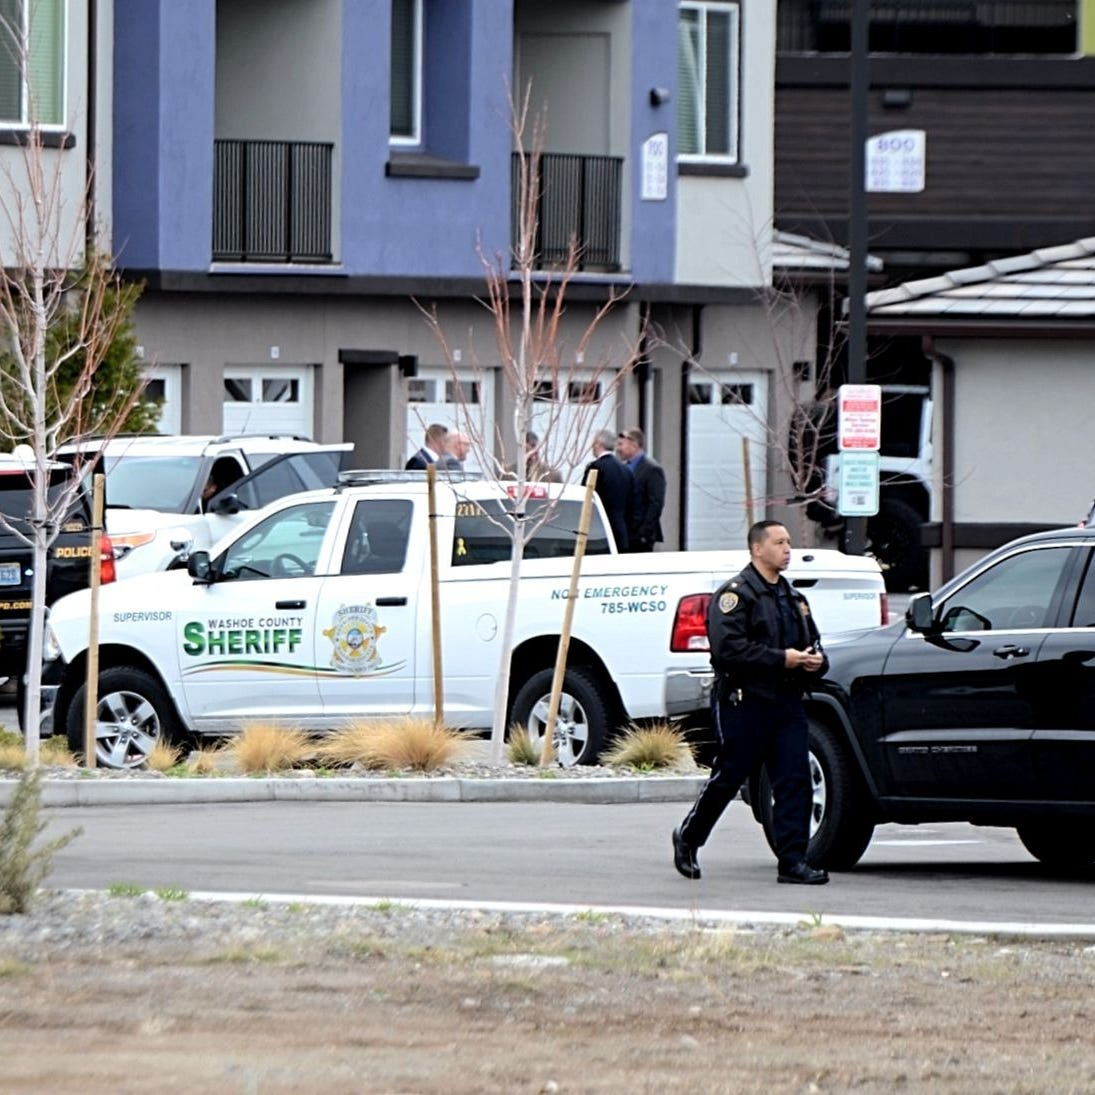 Police: Reno officer in stable condition after being injured during Wednesday morning shooting